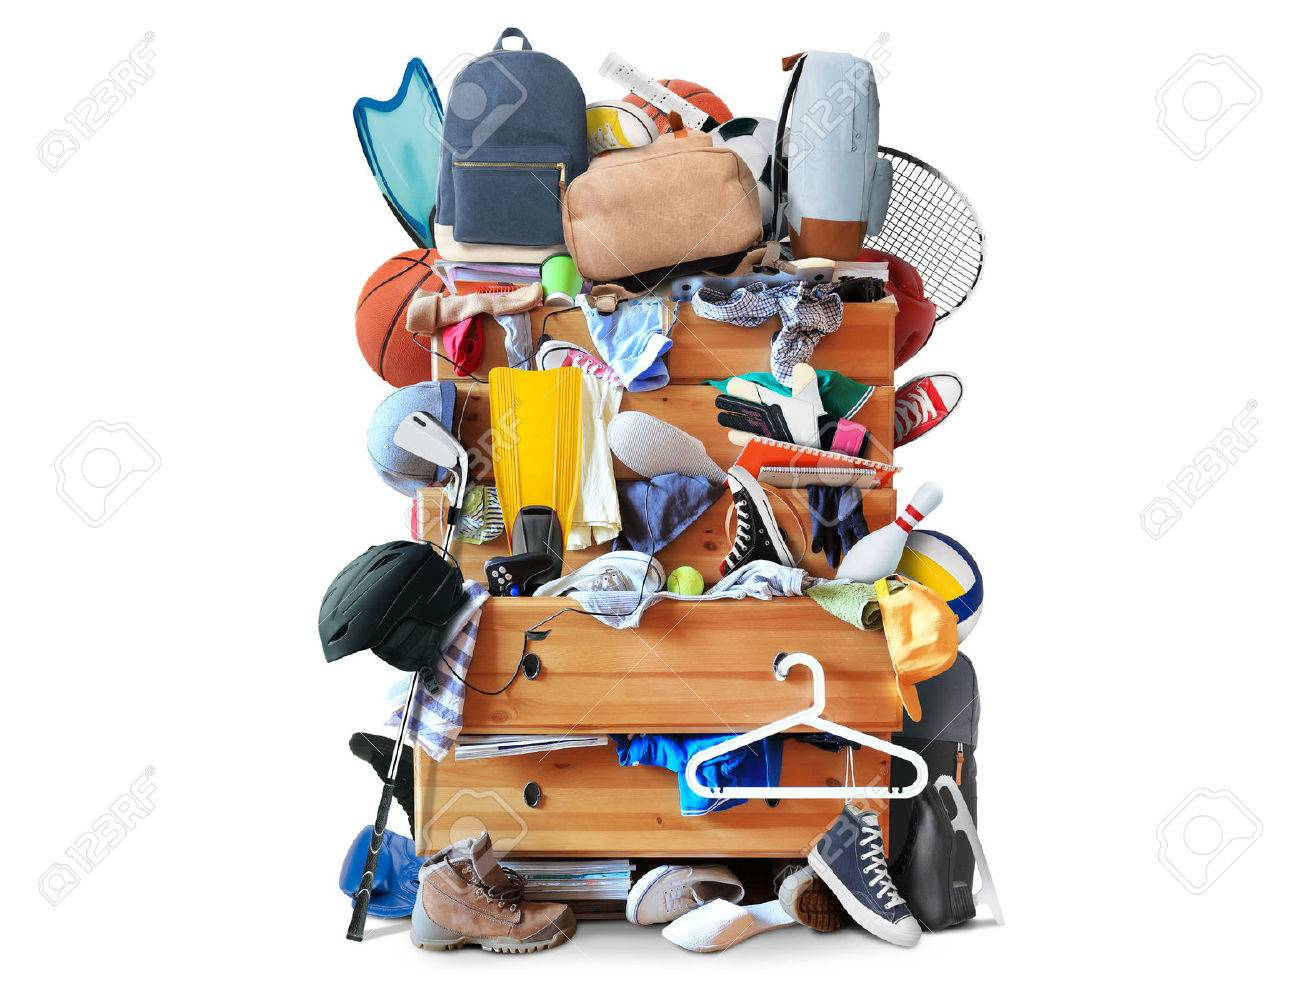 Mess, dresser with scattered clothes, shoes and other things - 50312342